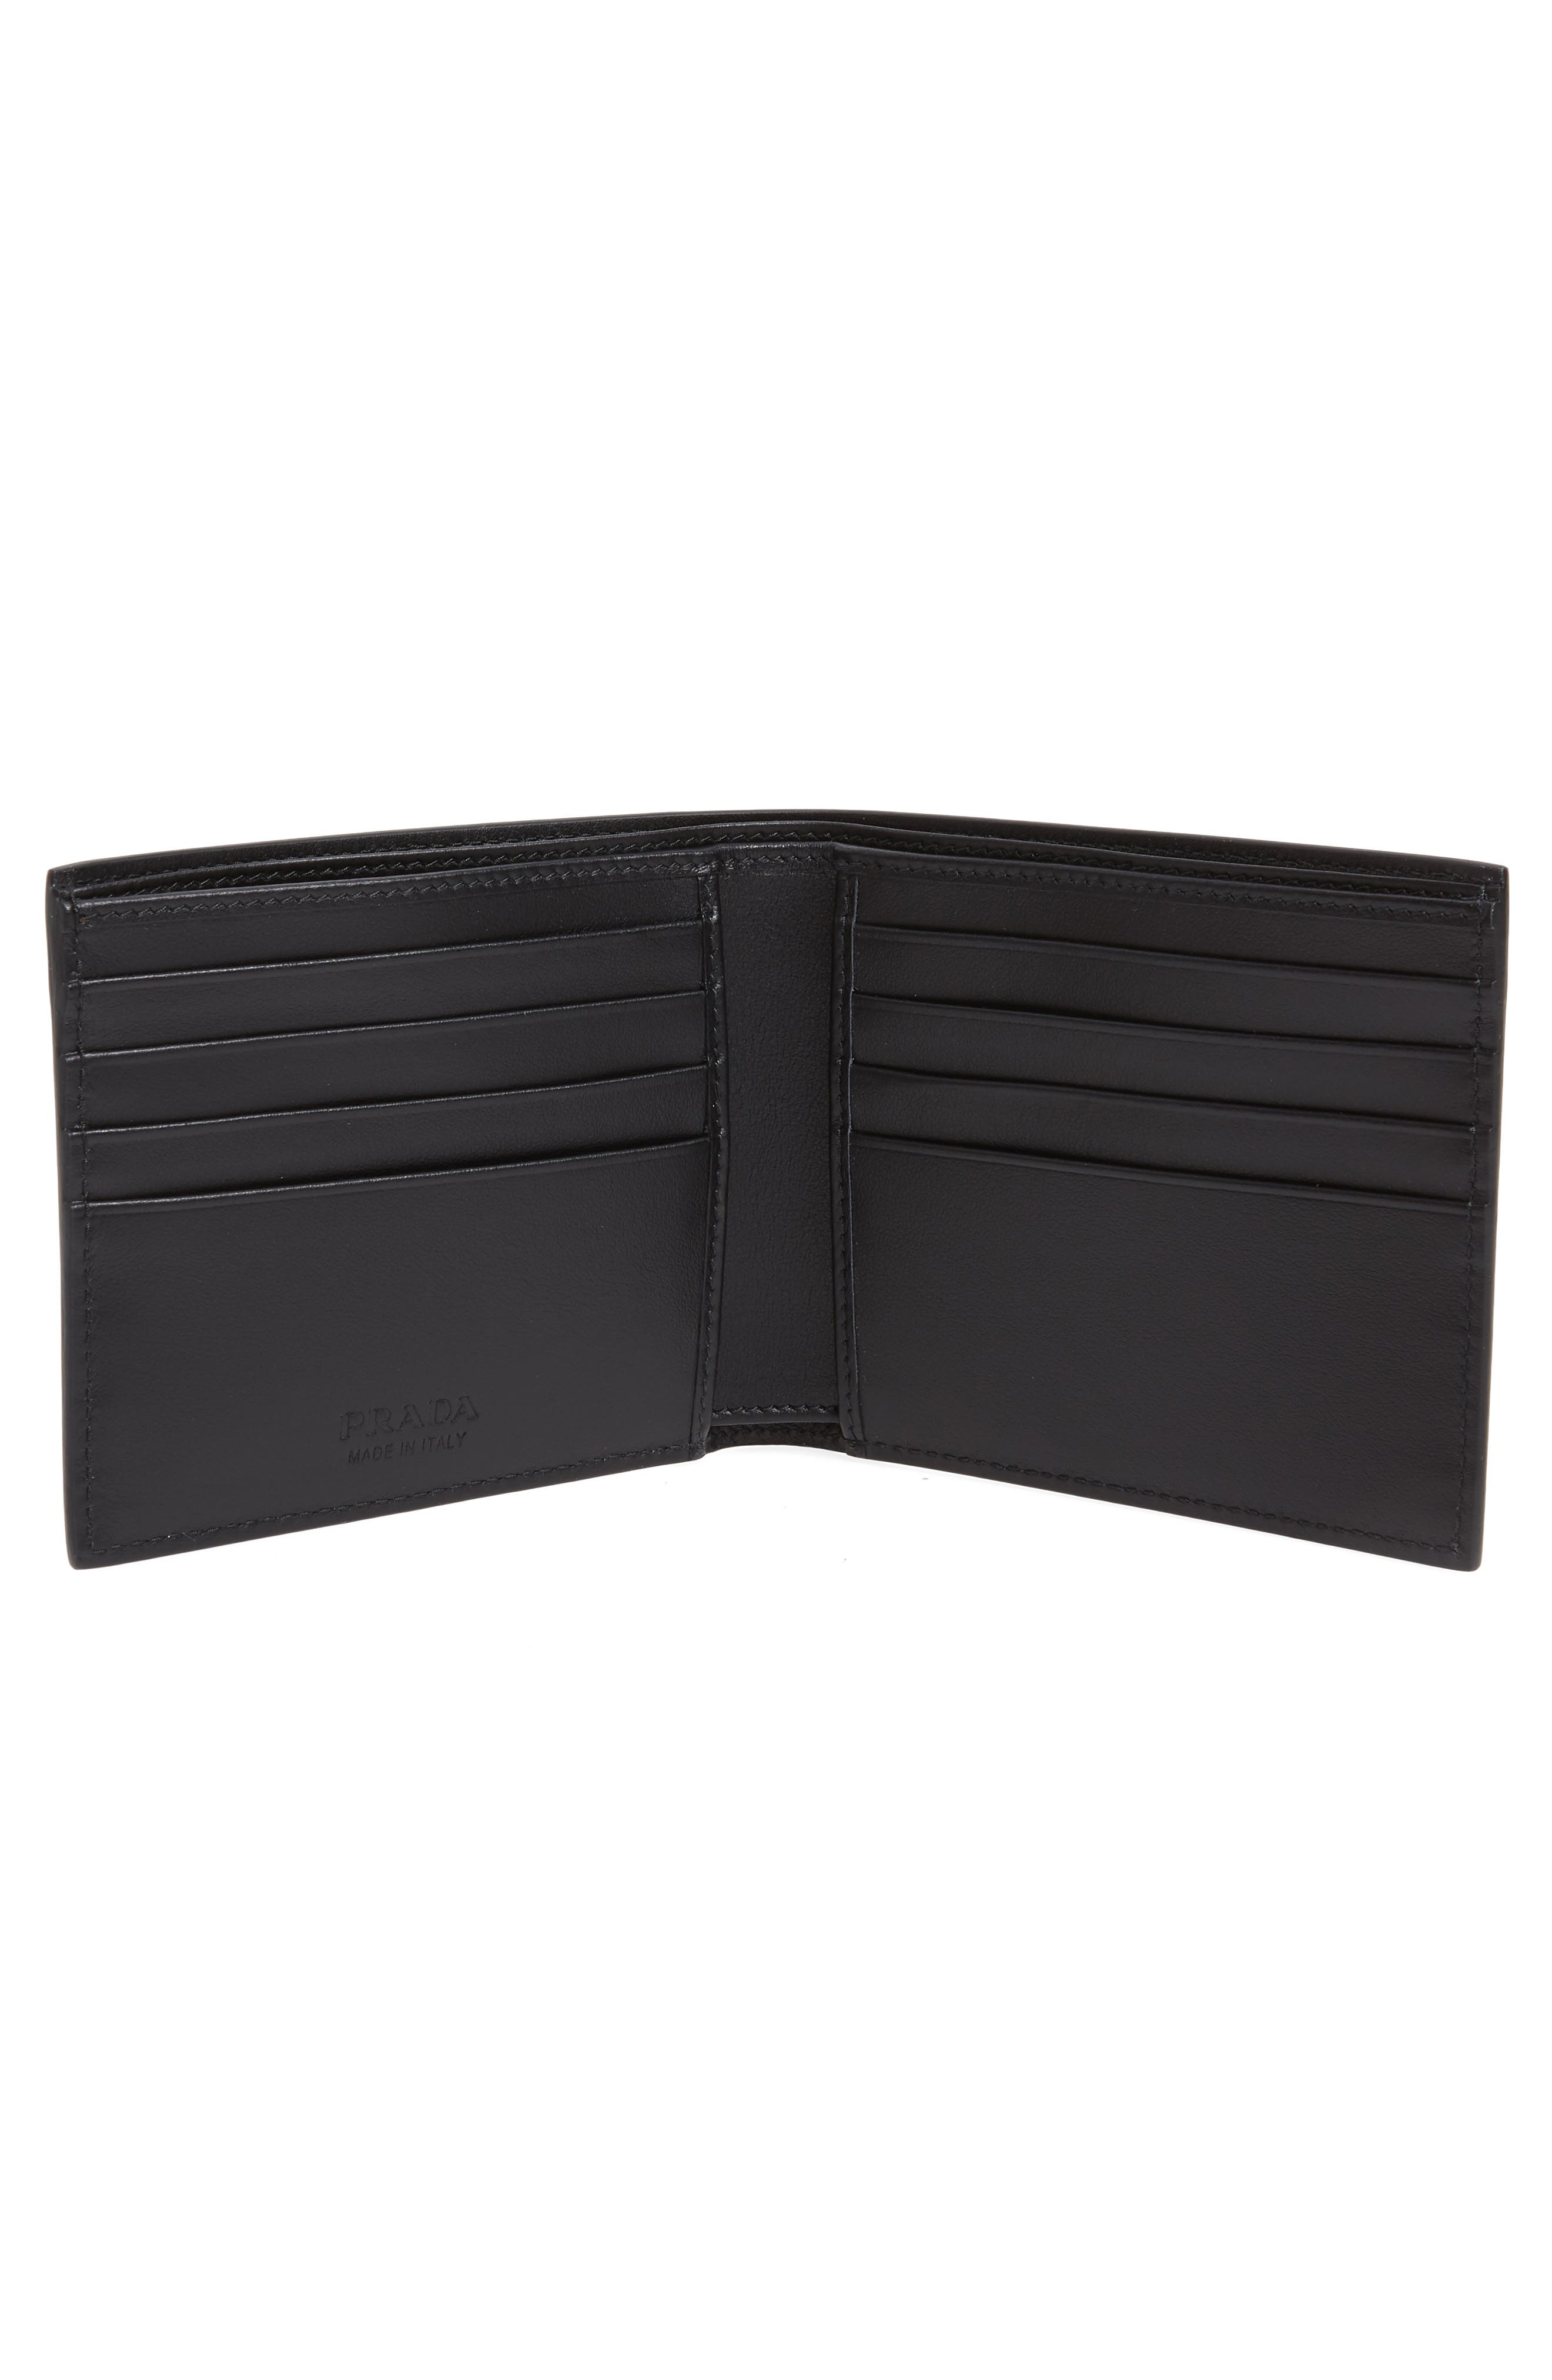 City Sport Leather Wallet,                             Alternate thumbnail 2, color,                             001